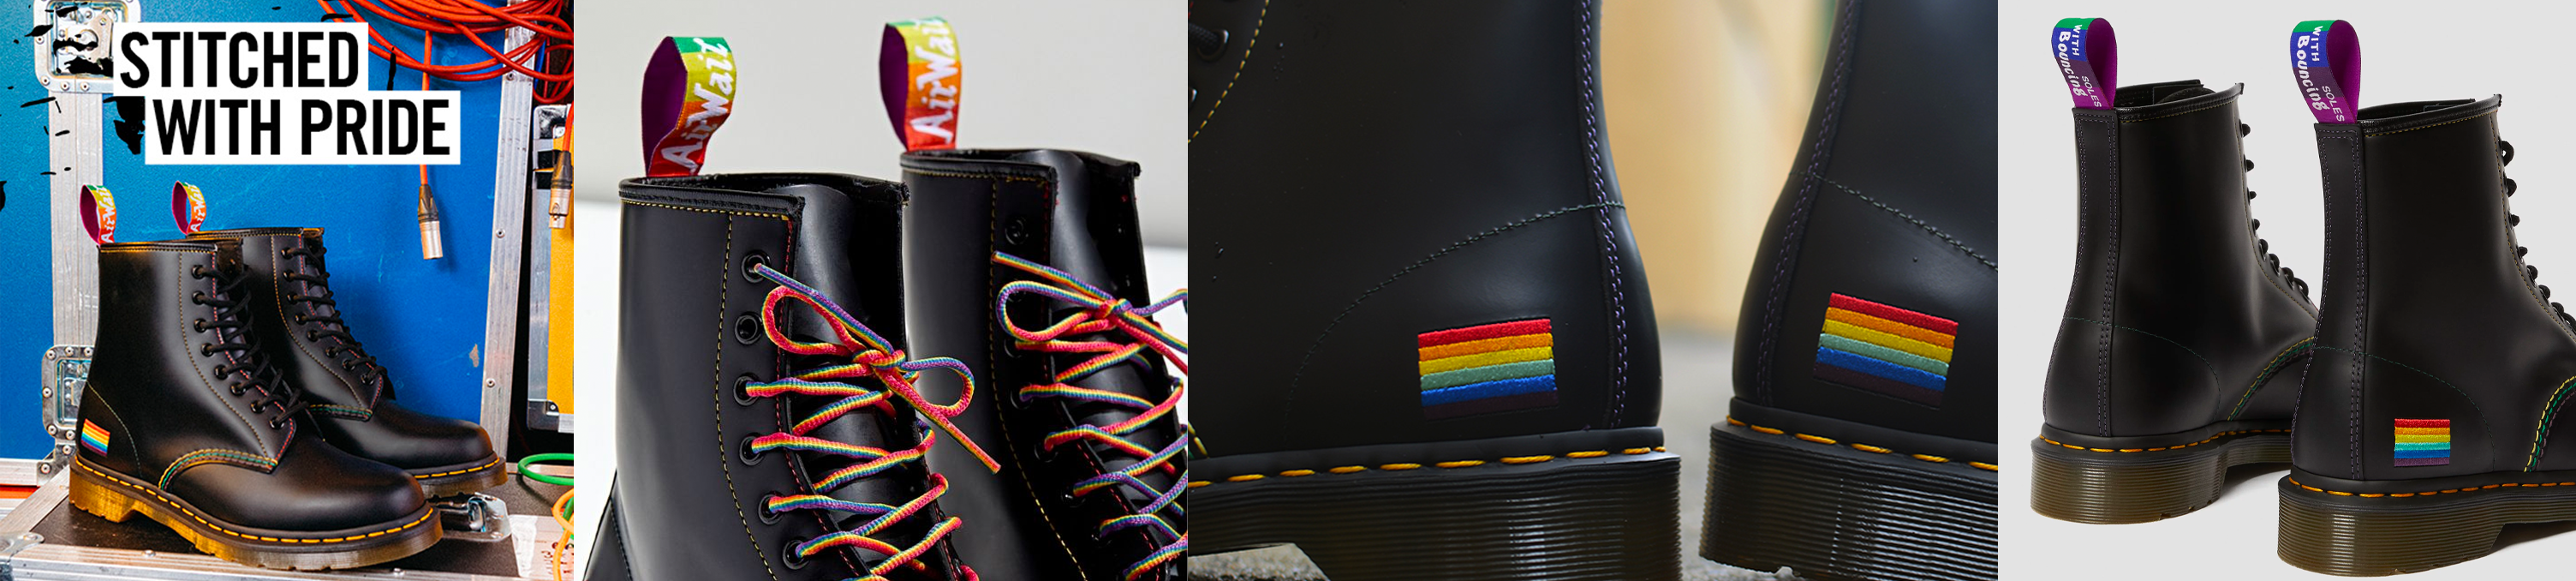 doc martens pride collection 2020